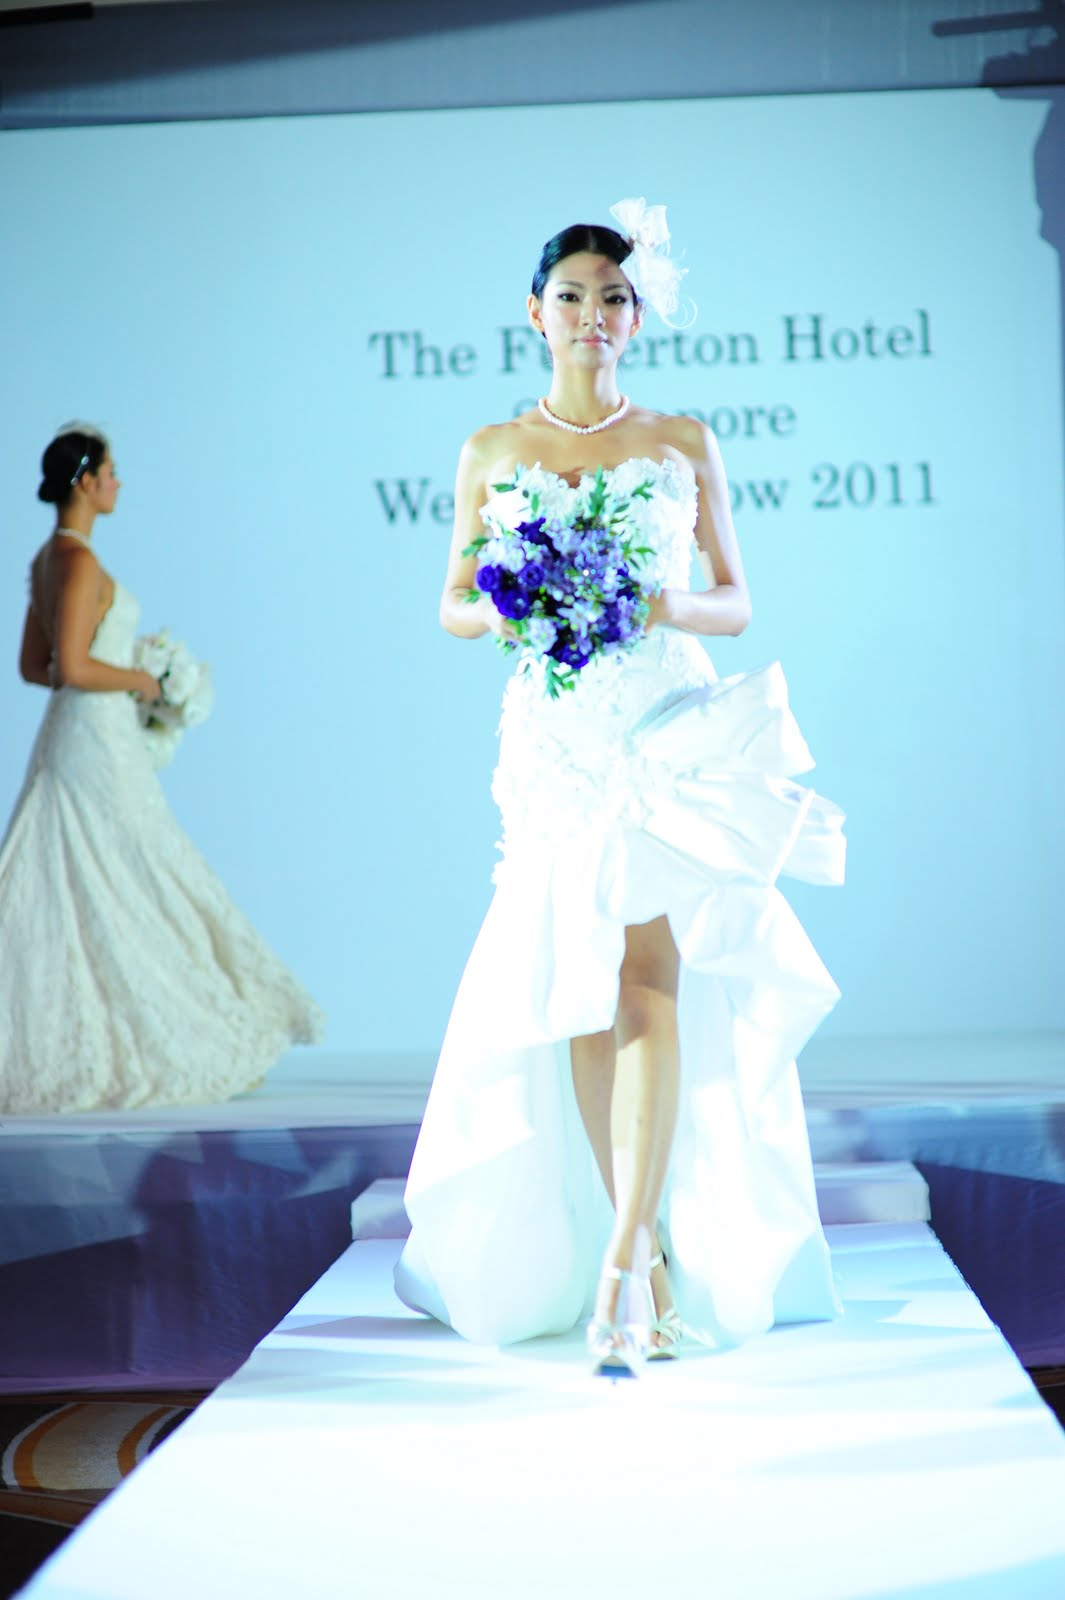 Wedding Show at The Fullerton Hotel,Singapore August 27 | RENEE L ...